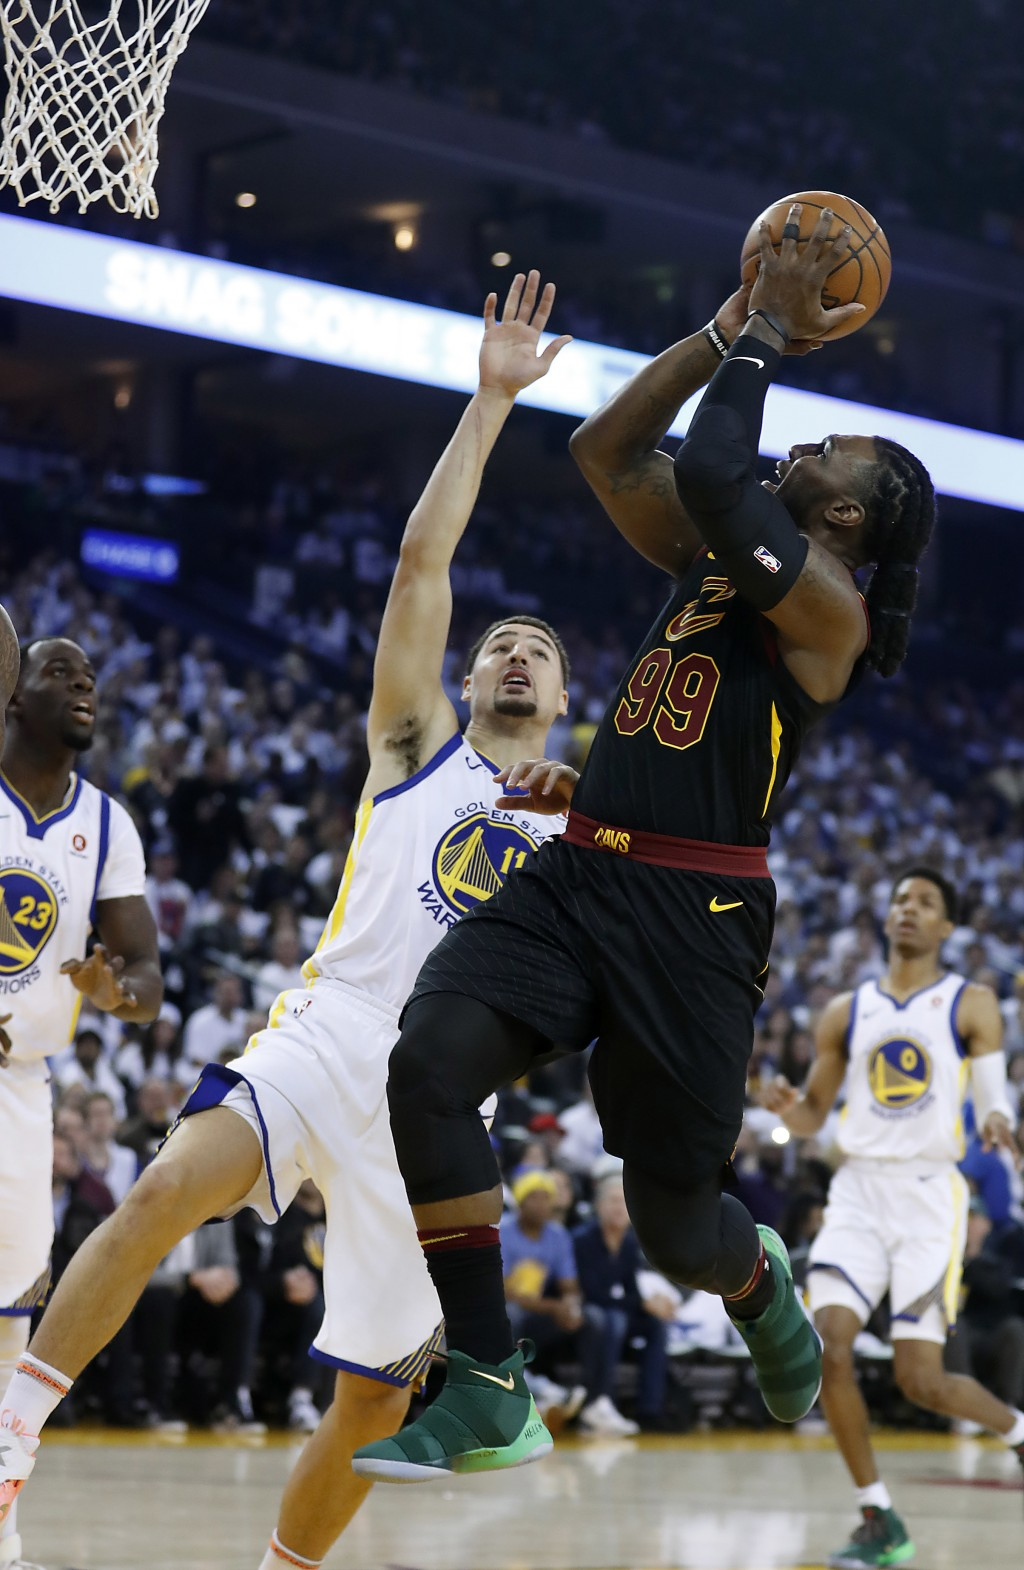 Cleveland Cavaliers forward Jae Crowder (99) shoots over Golden State Warriors guard Klay Thompson (11) during the first half of an NBA basketball gam...